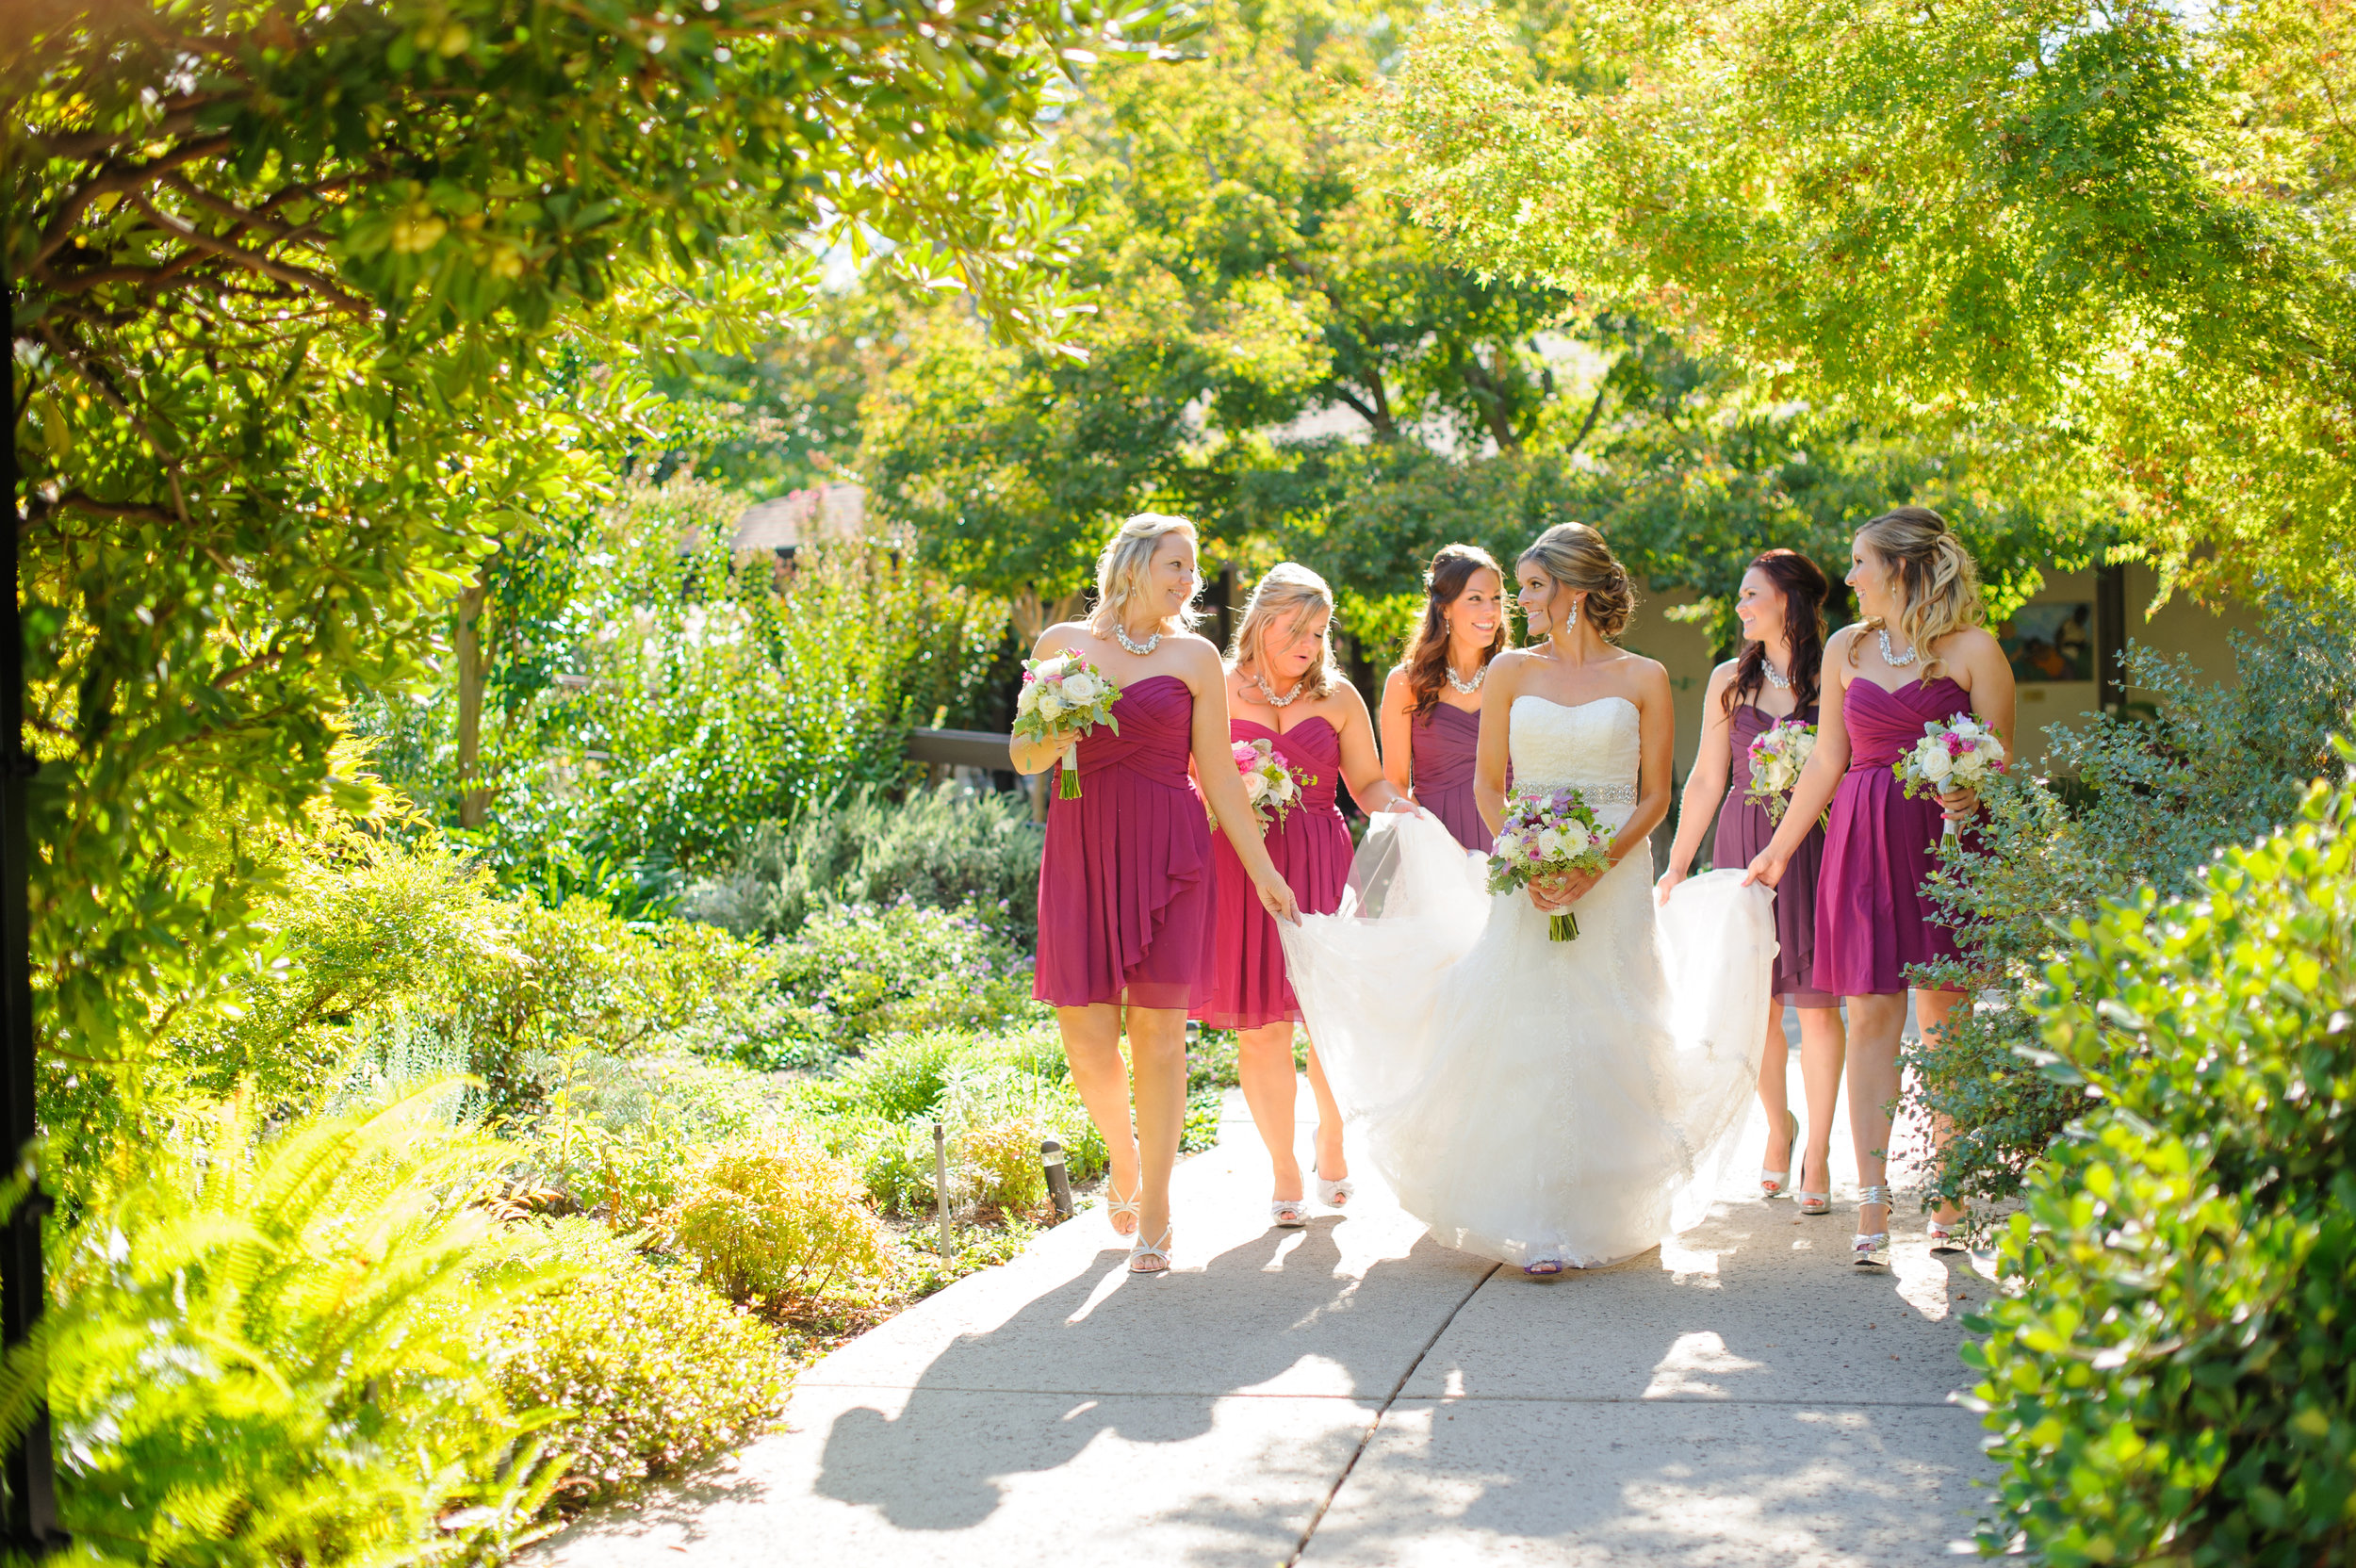 susan-brad-007-sacramento-wedding-photographer-katherine-nicole-photography.JPG